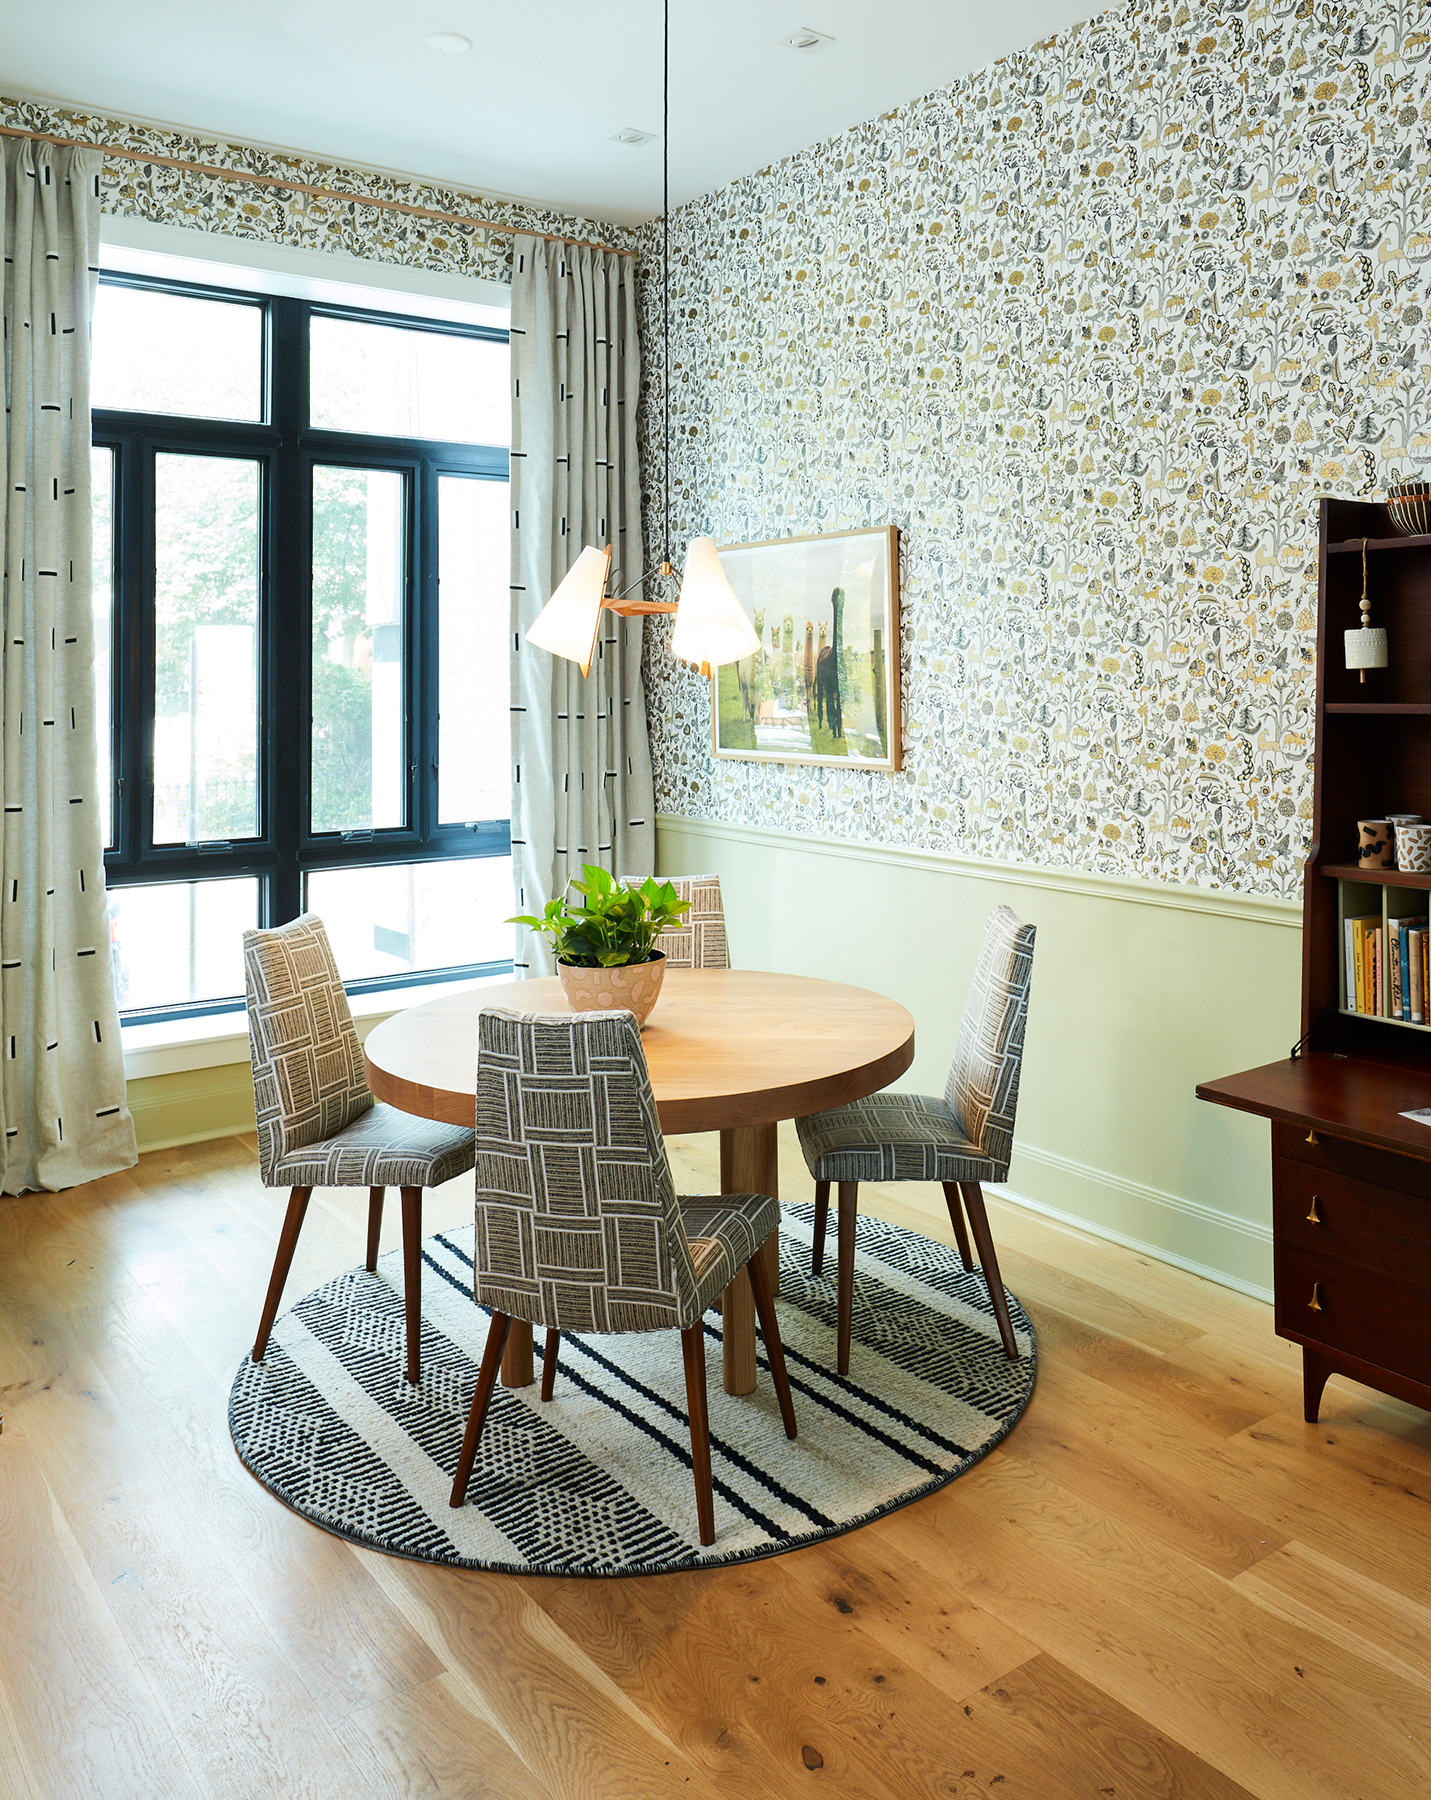 2019 Real Simple Home: Dining Room